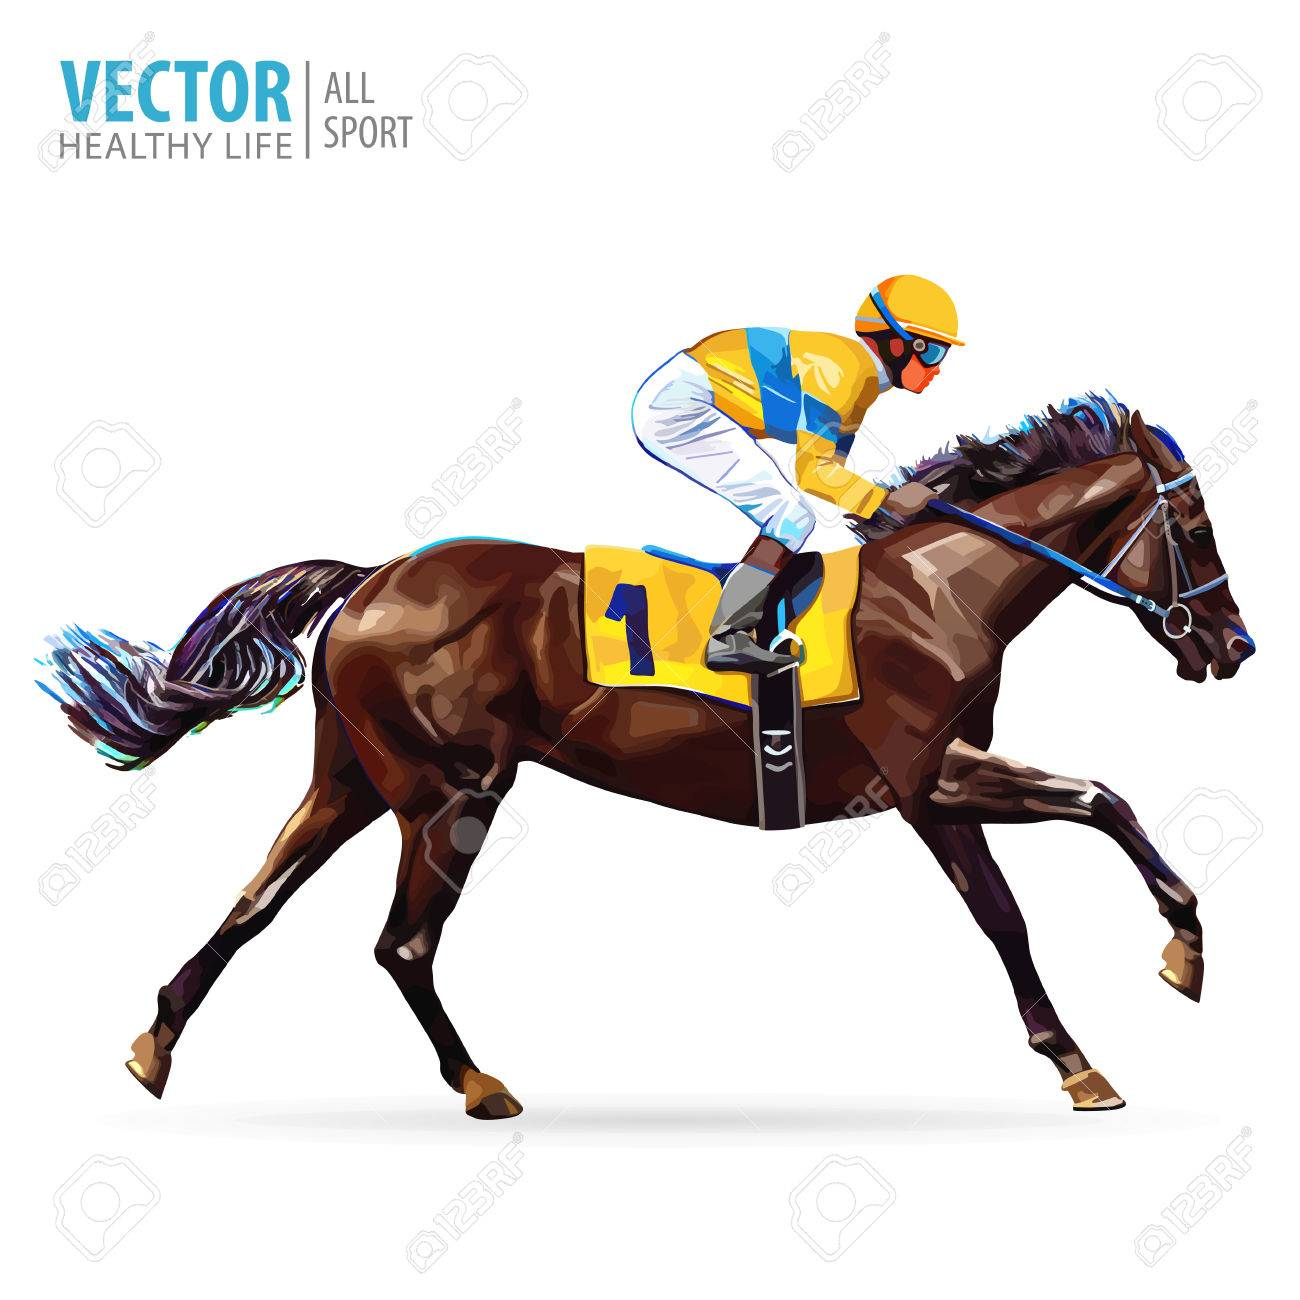 Jockey on horse. Champion. Horse racing. Hippodrome. Racetrack. Jump racetrack. Horse riding. Racing horse coming first to finish line. Vector illustration. - 78668708